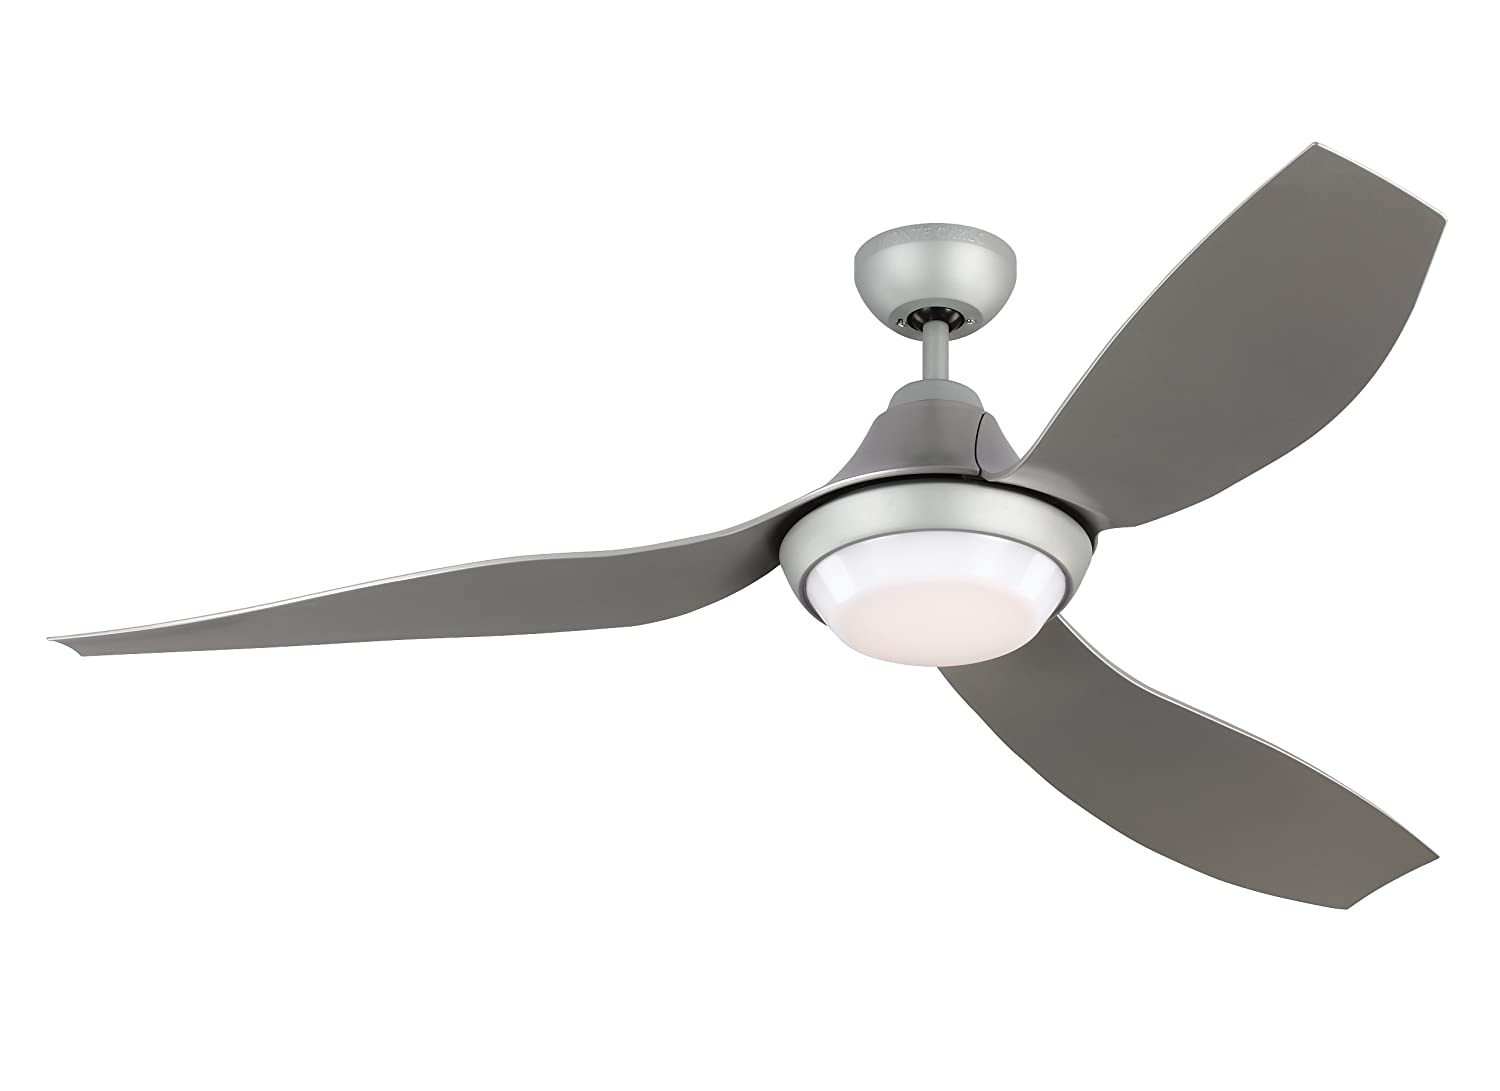 Monte carlo avvo 3avor56gryd grey 56 indoor outdoor energy efficient ceiling fan with led light remote included amazon com